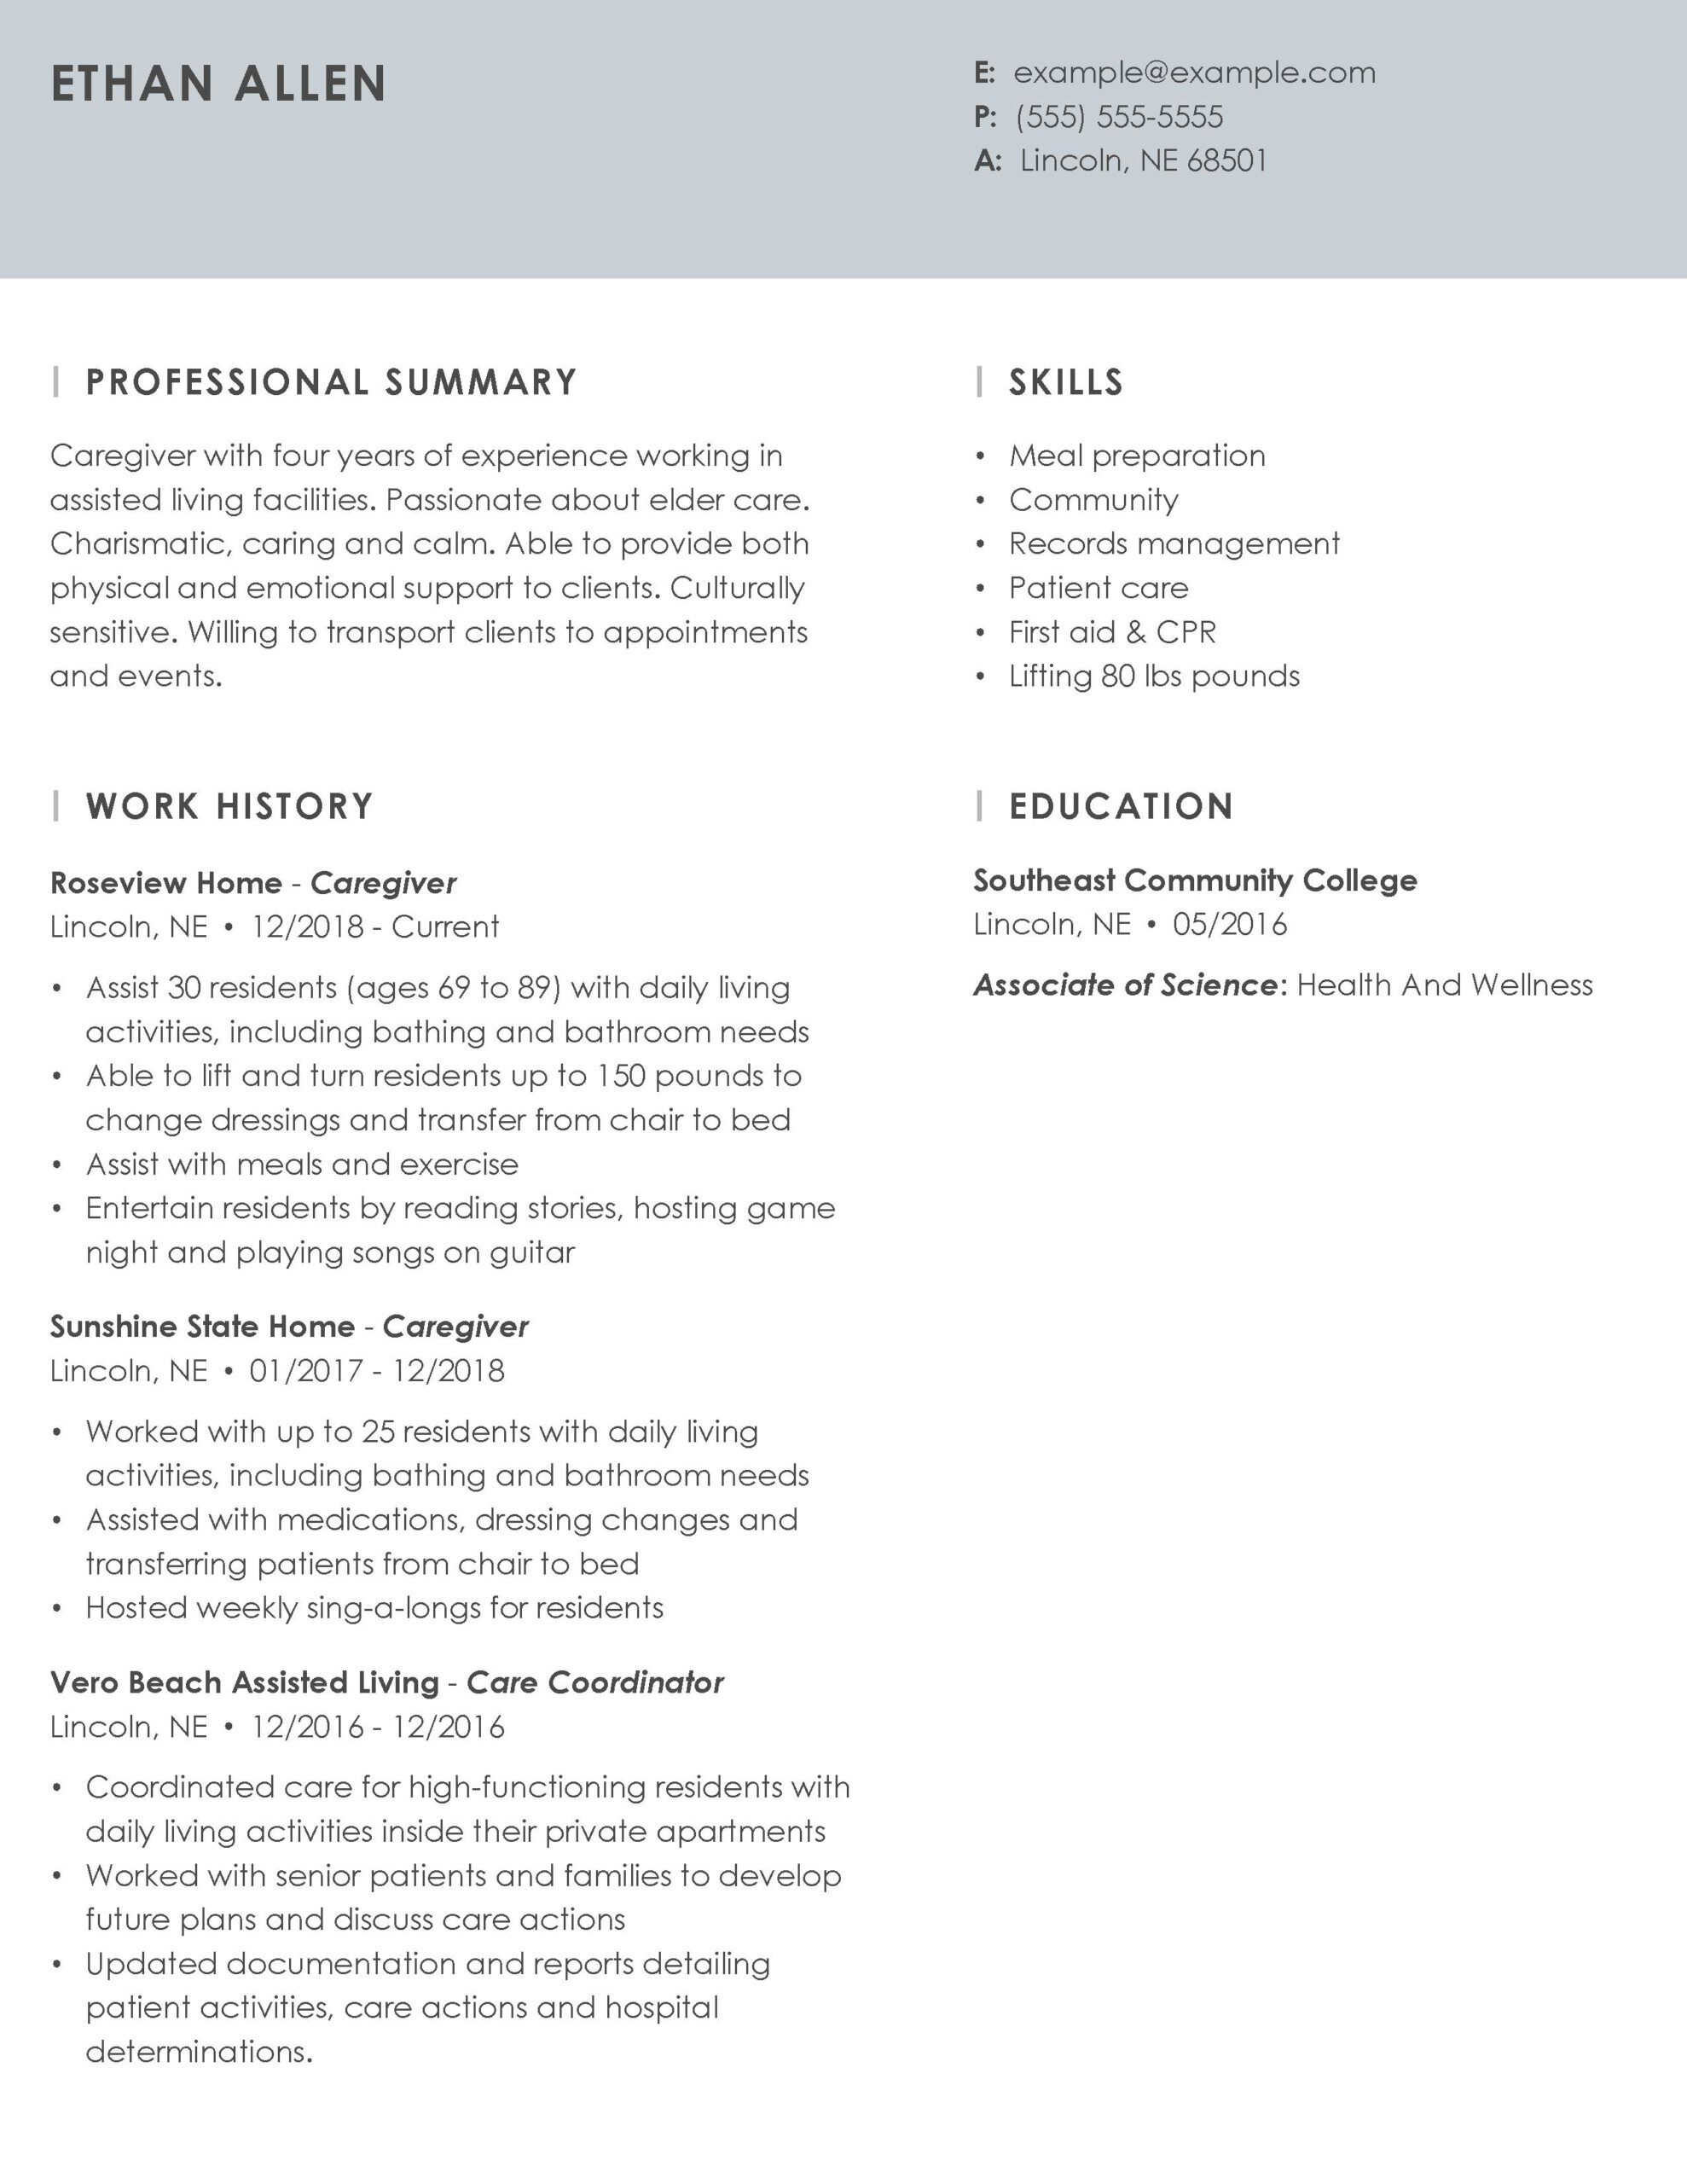 professional caregiver resume example tips myperfectresume writing for older applicants Resume Resume Writing Tips For Older Applicants